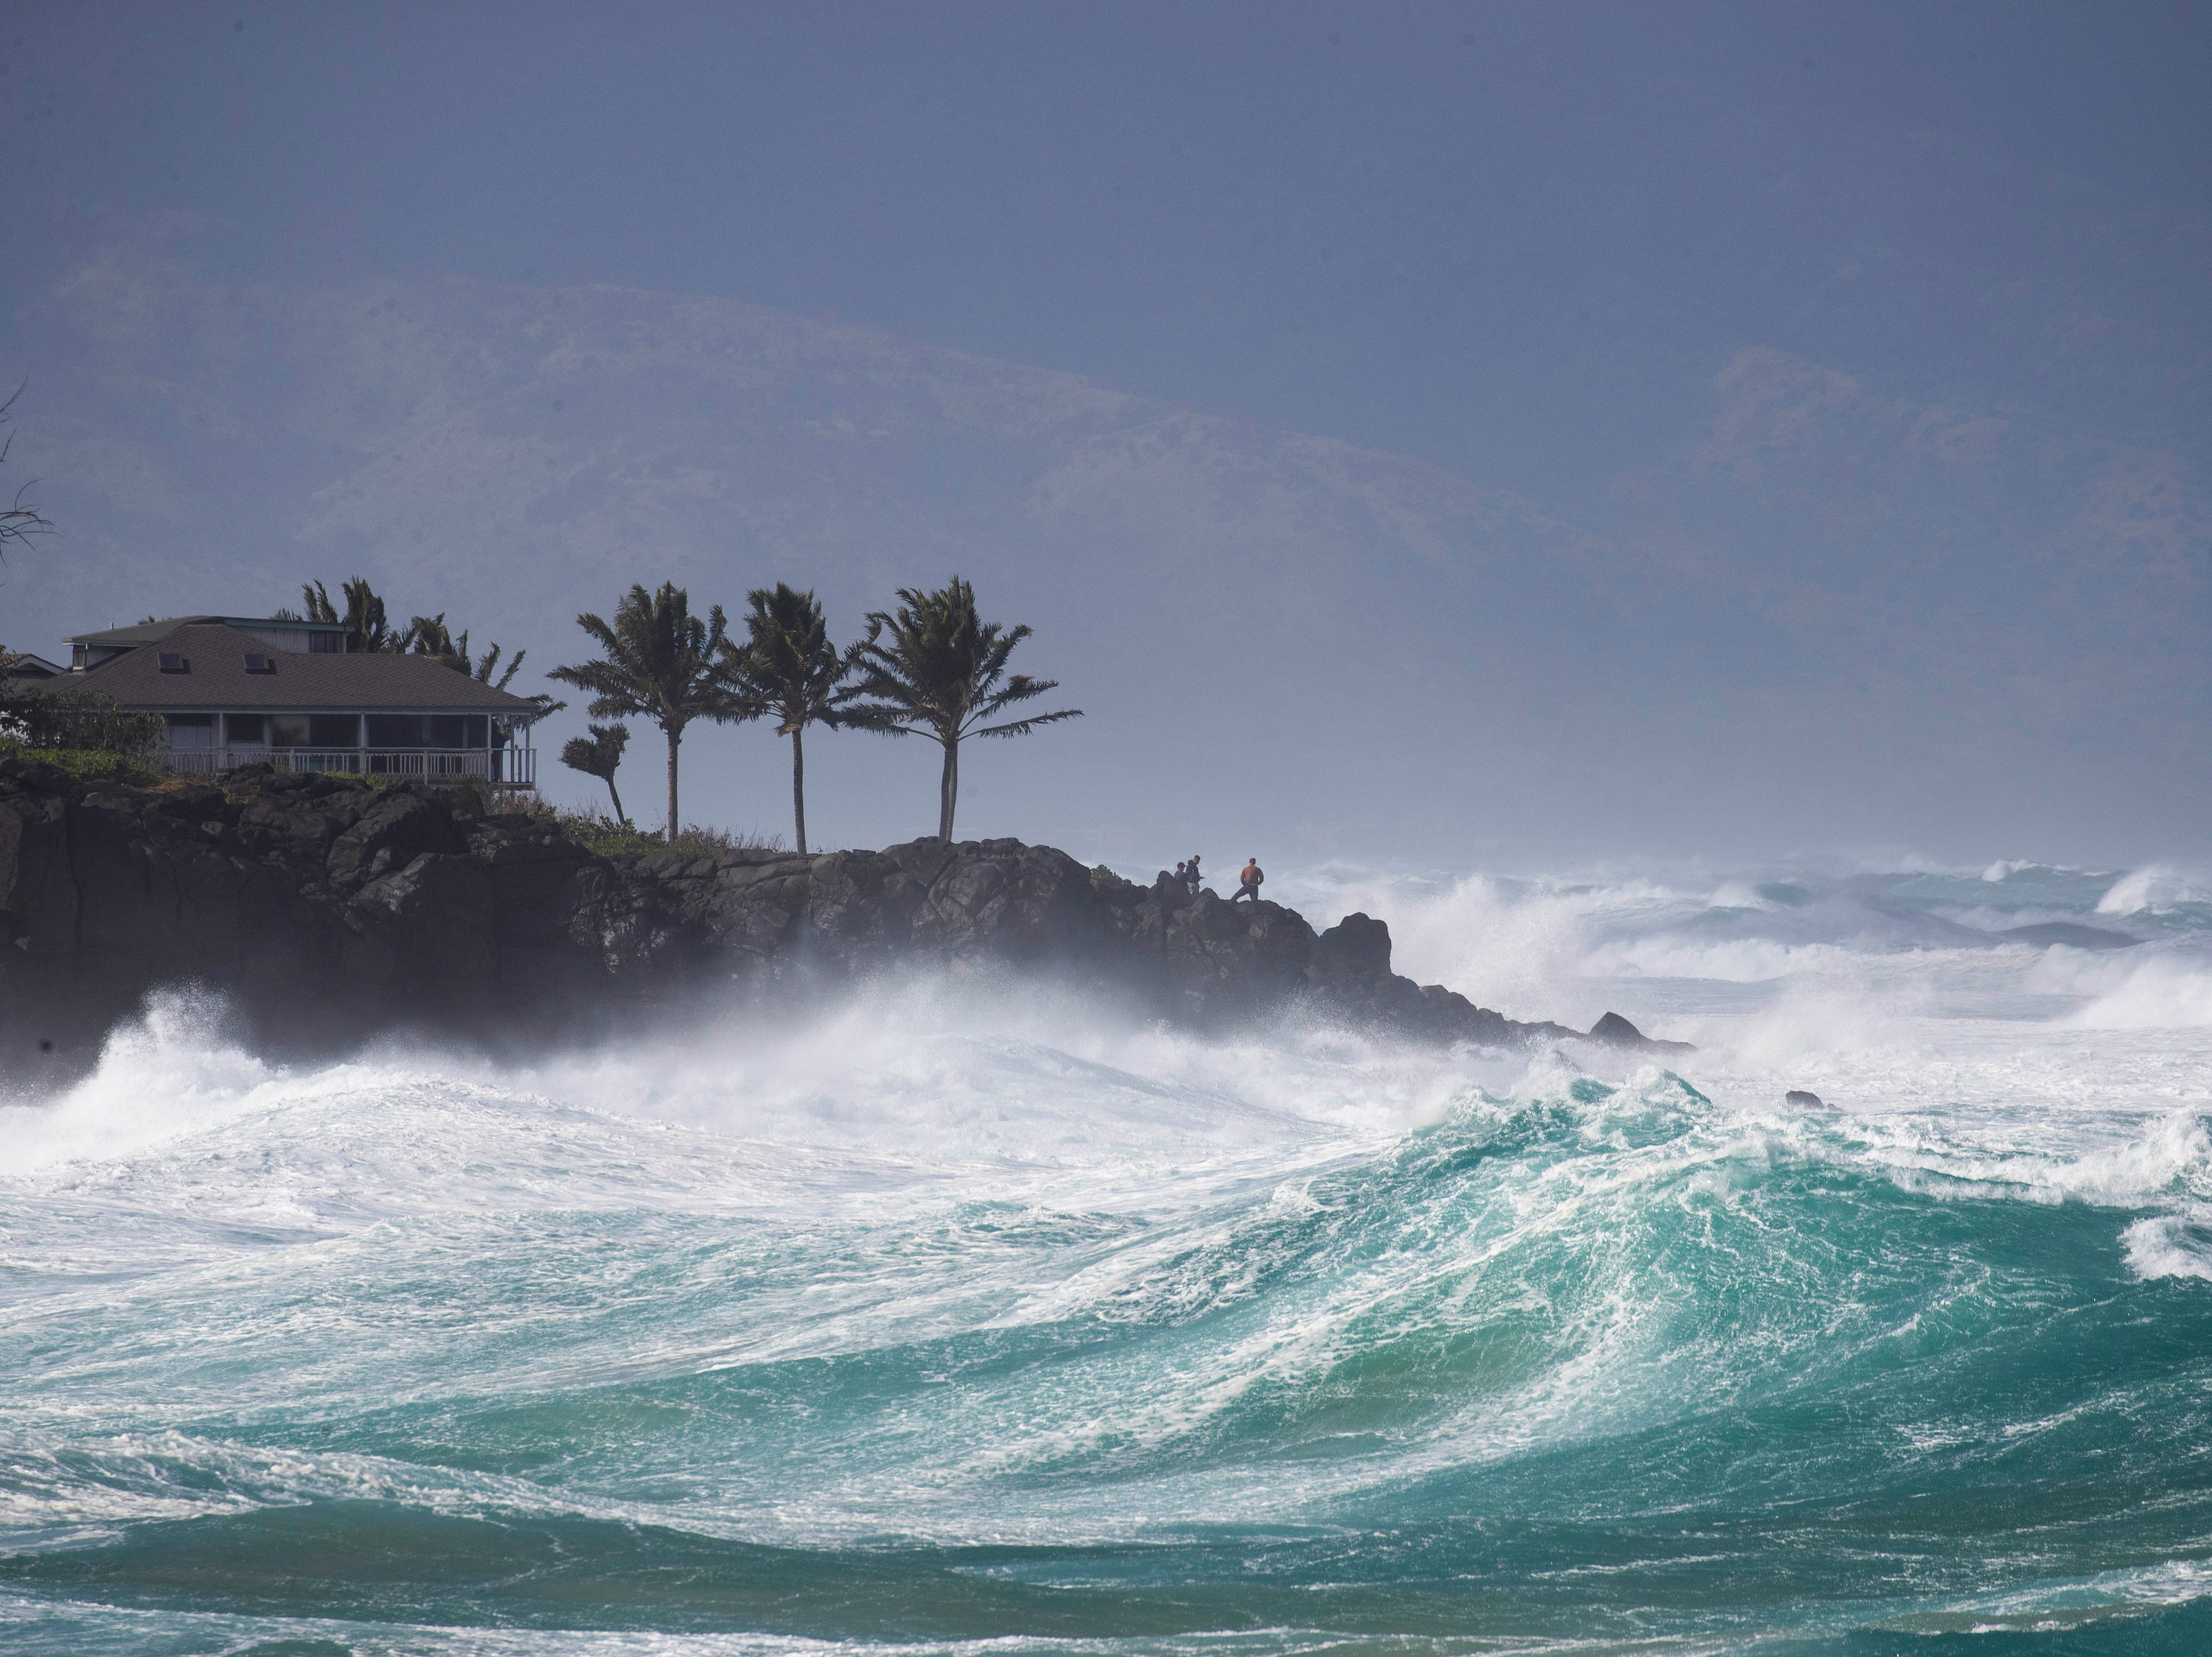 There's 'no place on the planet' – not even Hawaii – to escape climate change, experts say